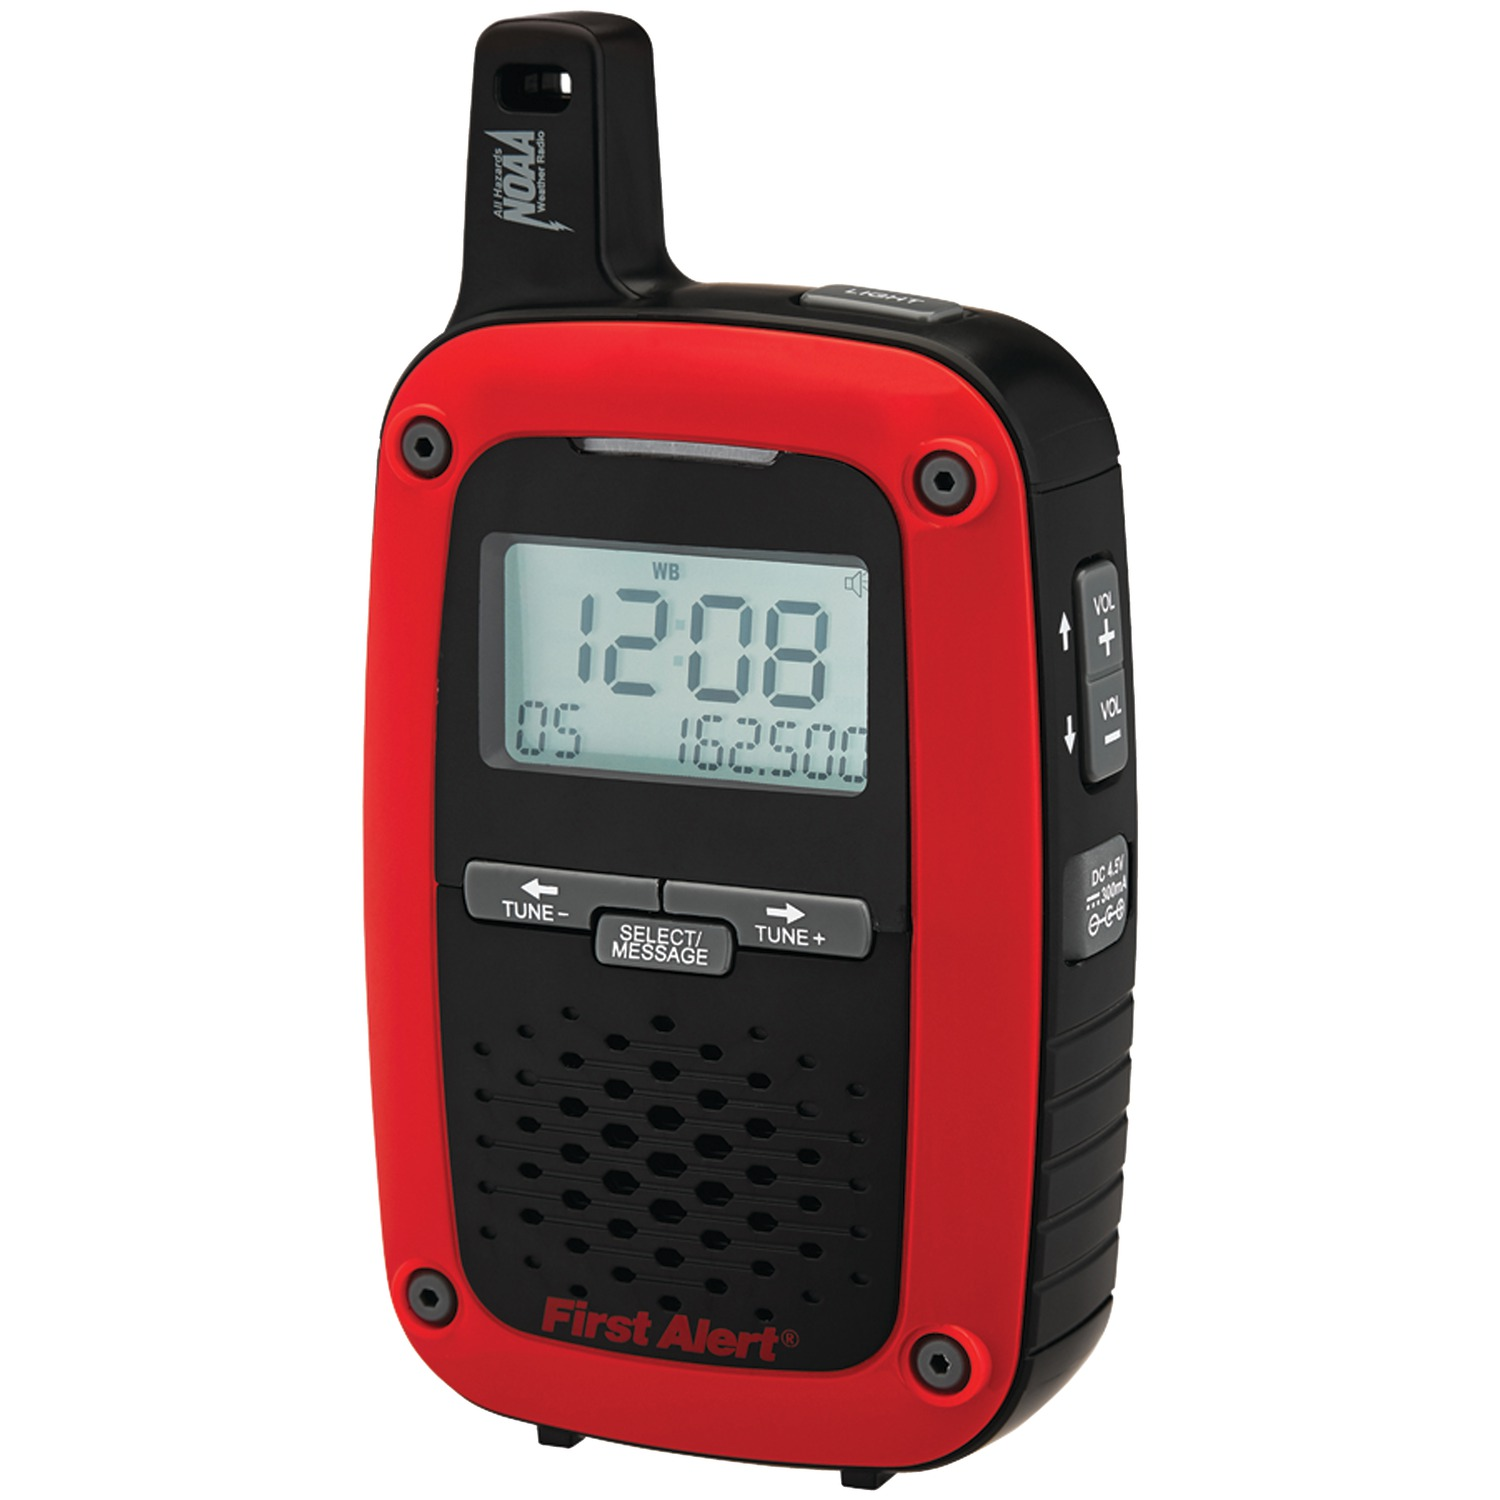 First Alert SFA1135 Portable AM/FM Digital Weather Radio with SAME Weather Alert